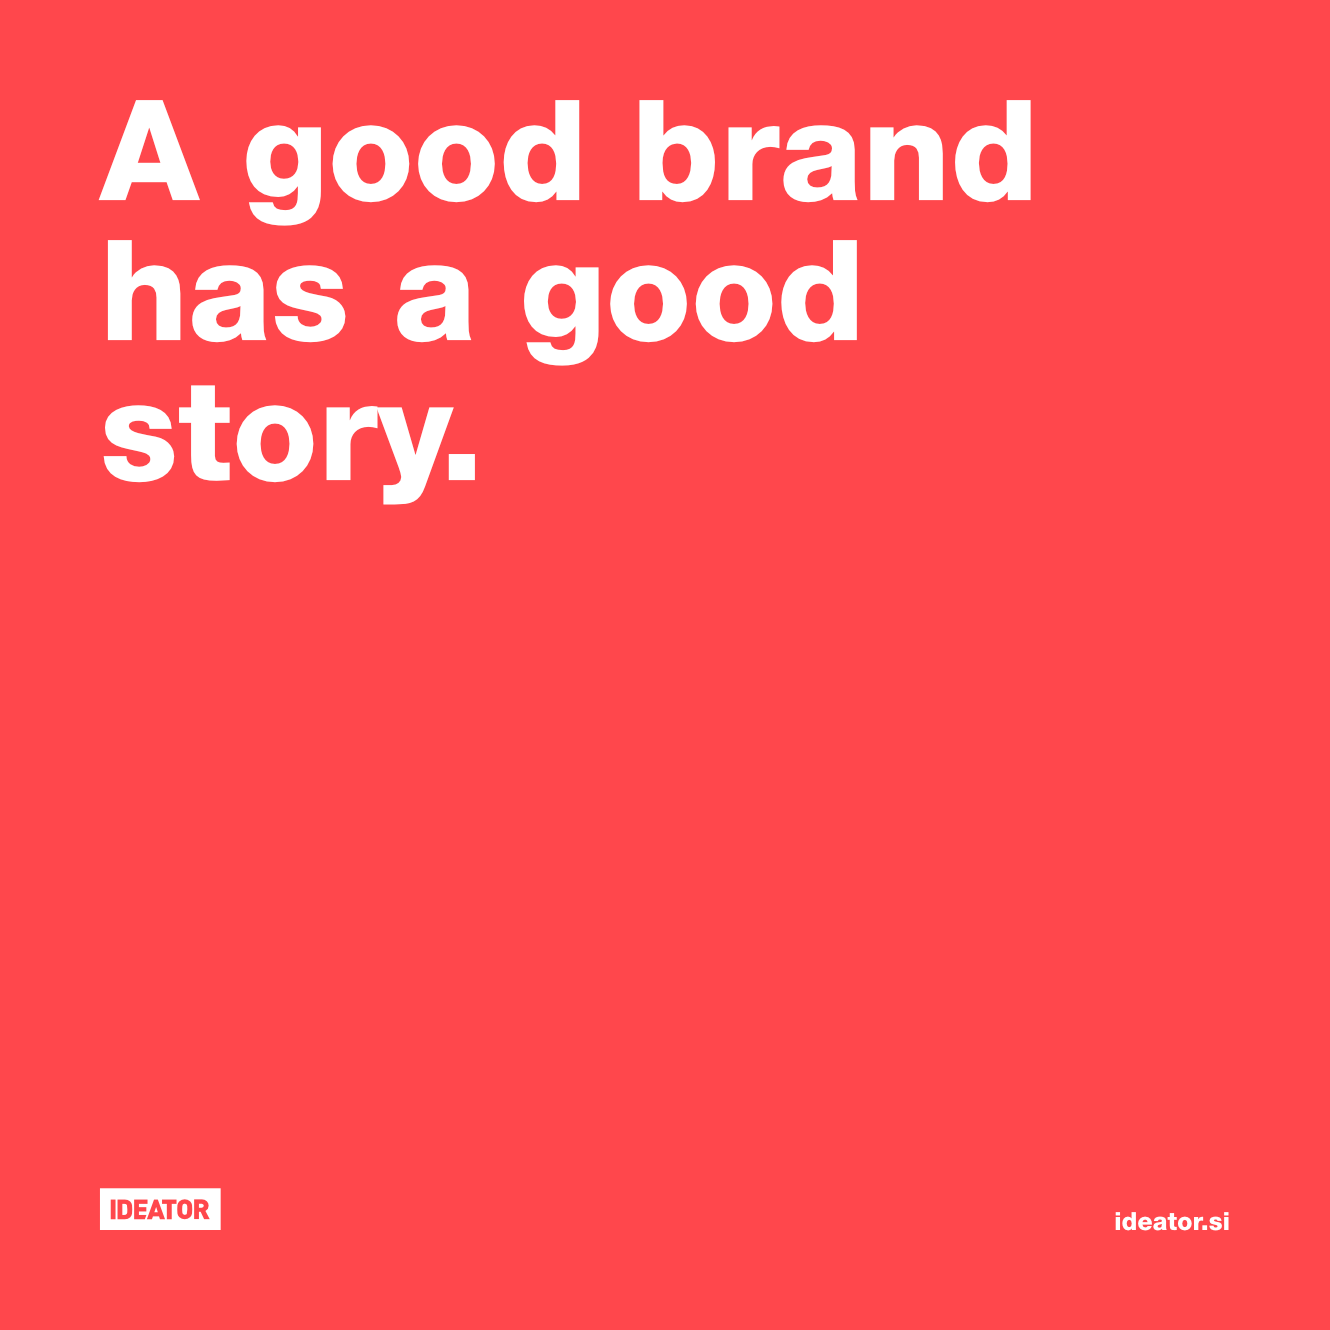 A good brand has a good story